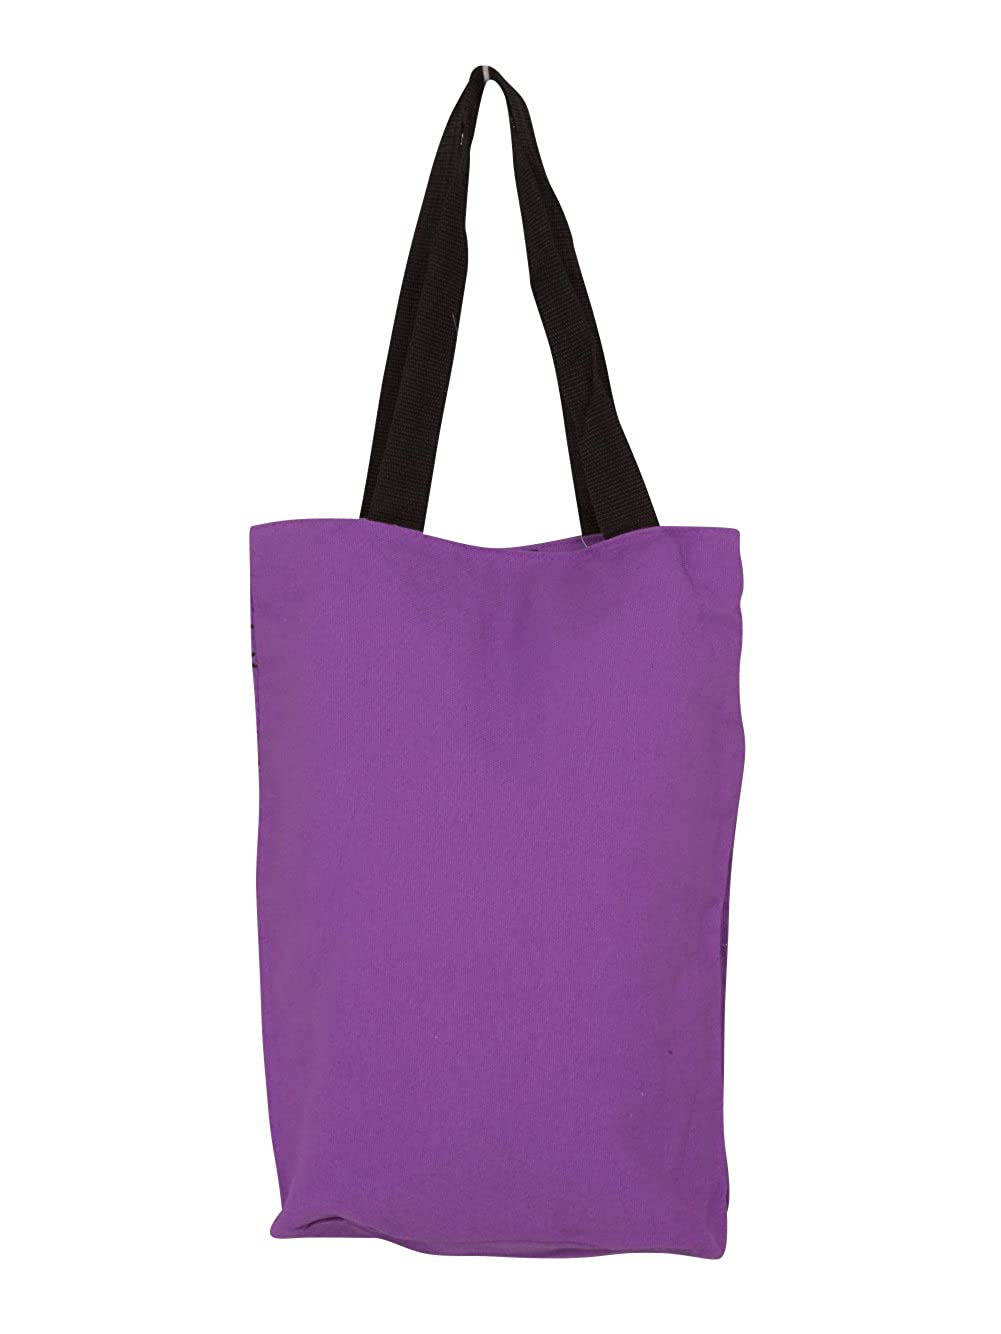 Hannah Montana Tote Bag Purple With Pink and Black Flowers Disney Channel